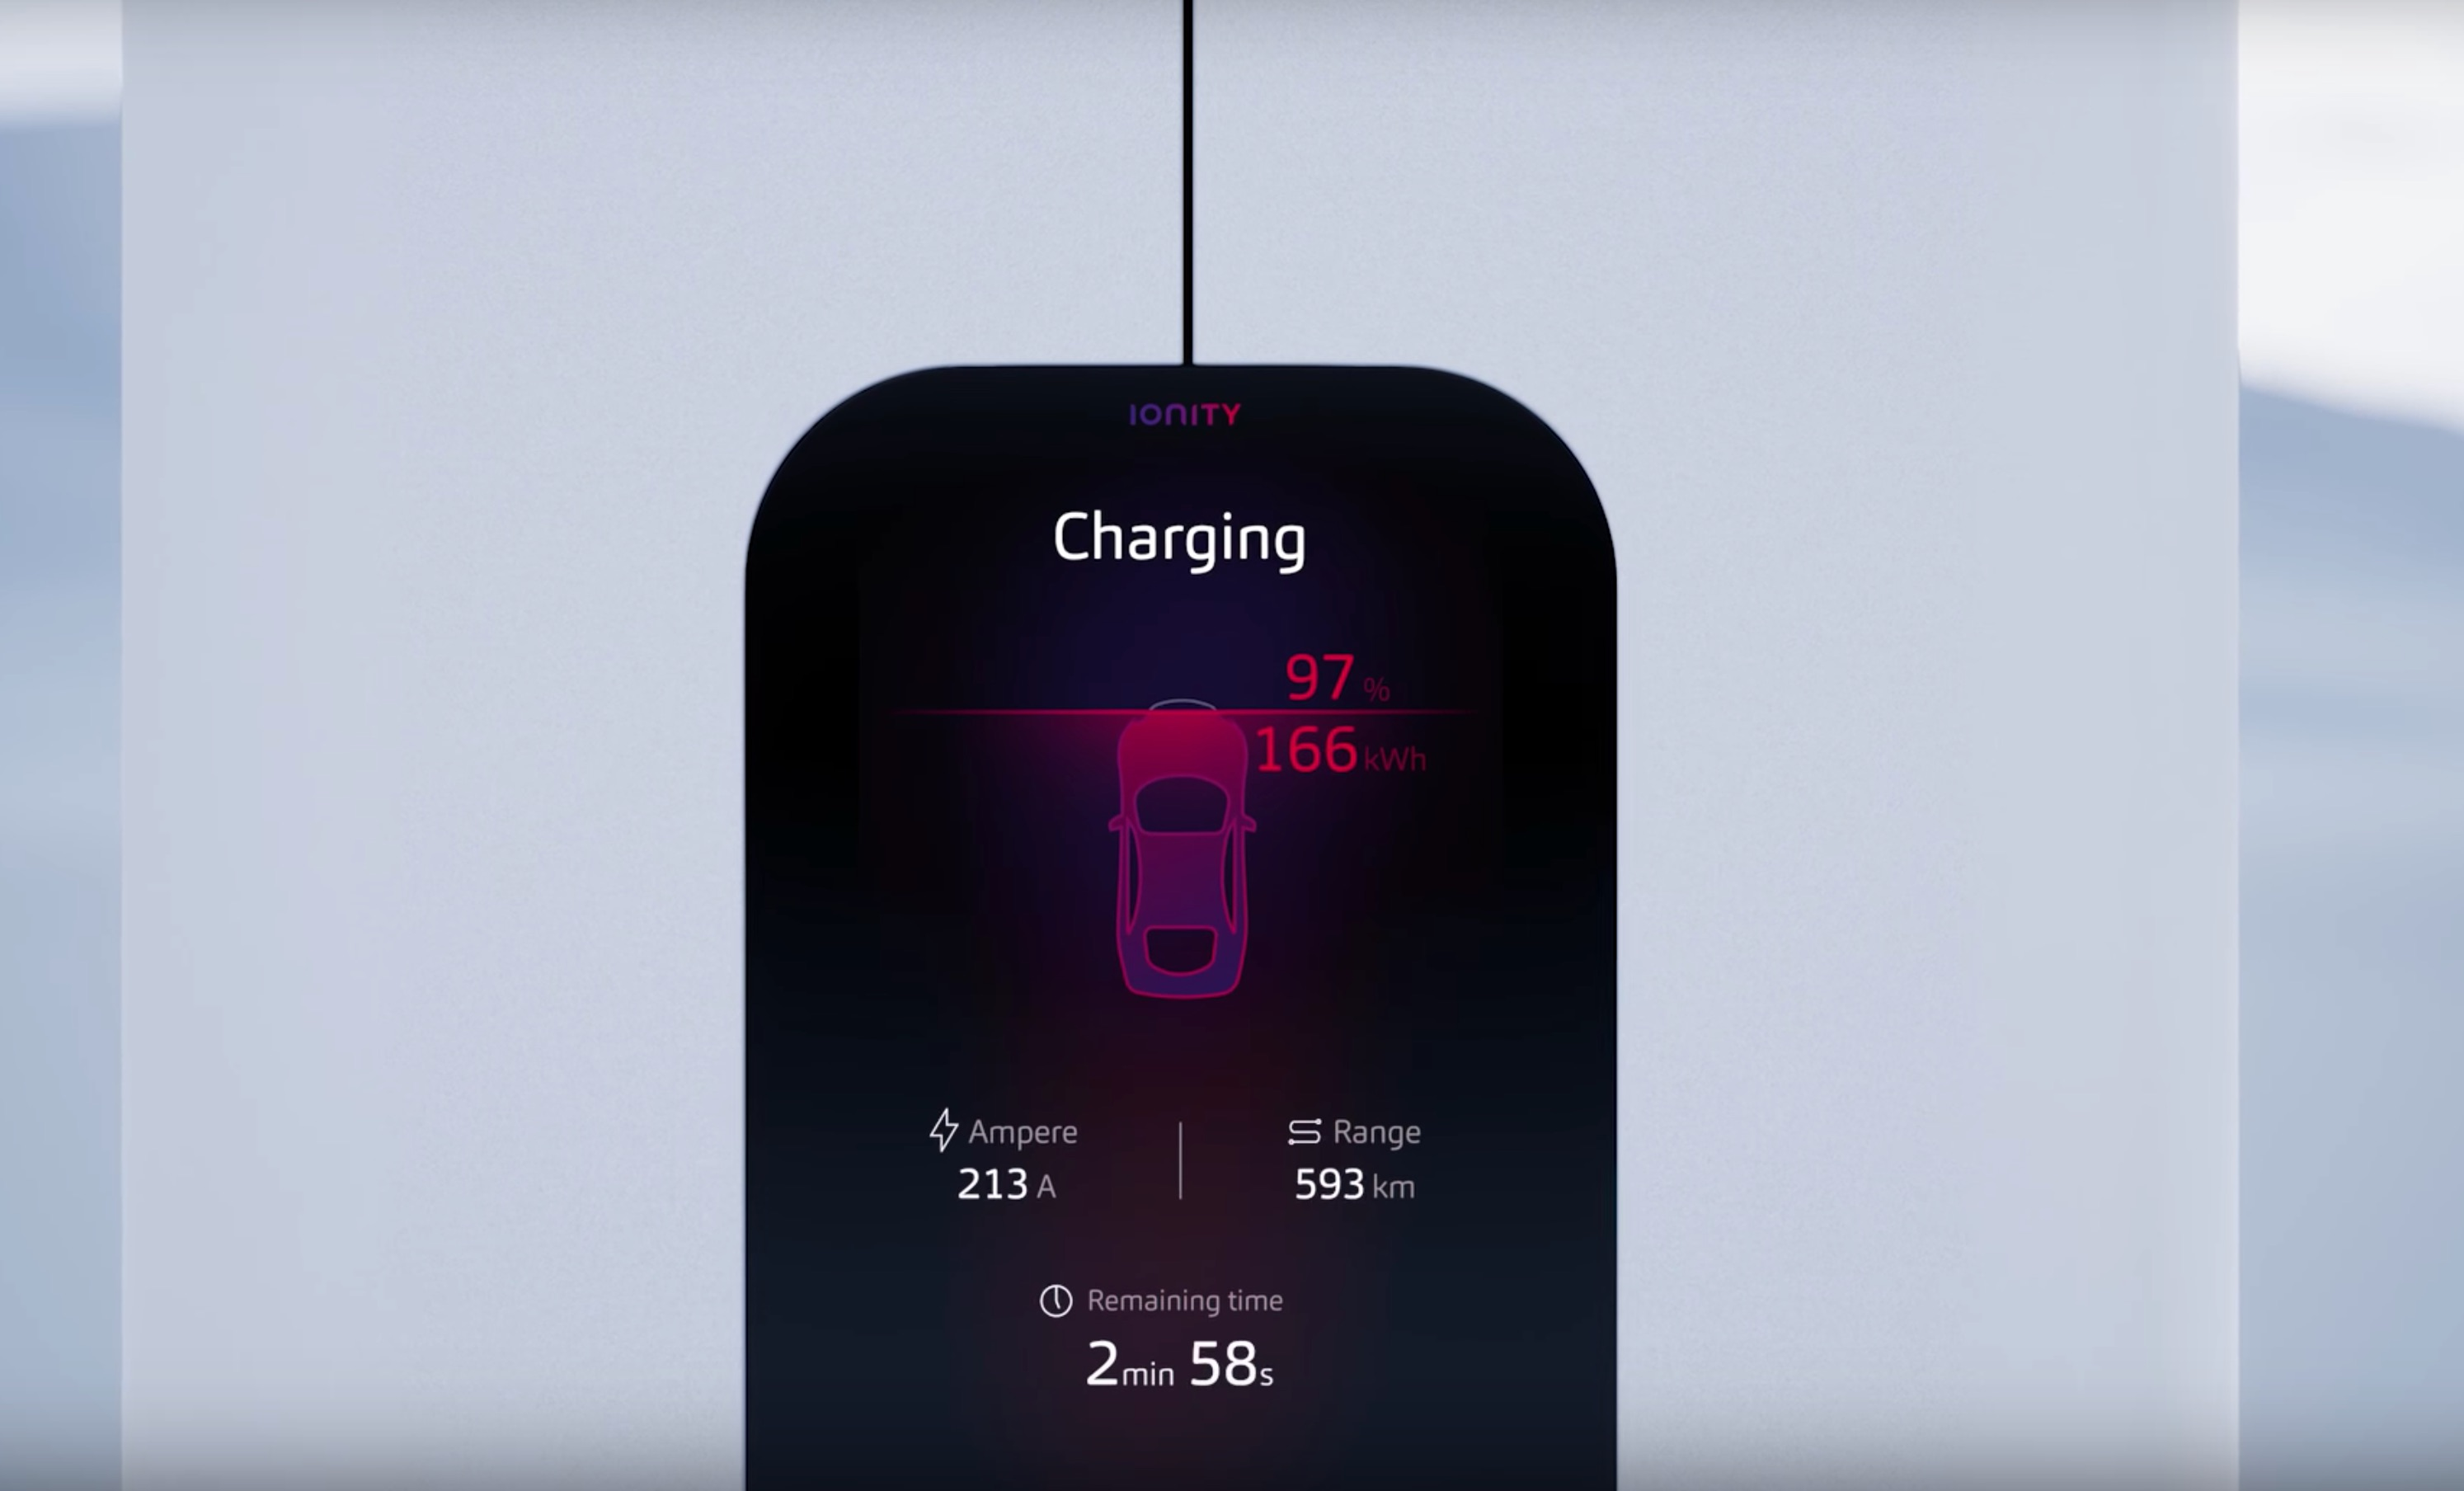 porsche-bmw-ionity-charging-station-display